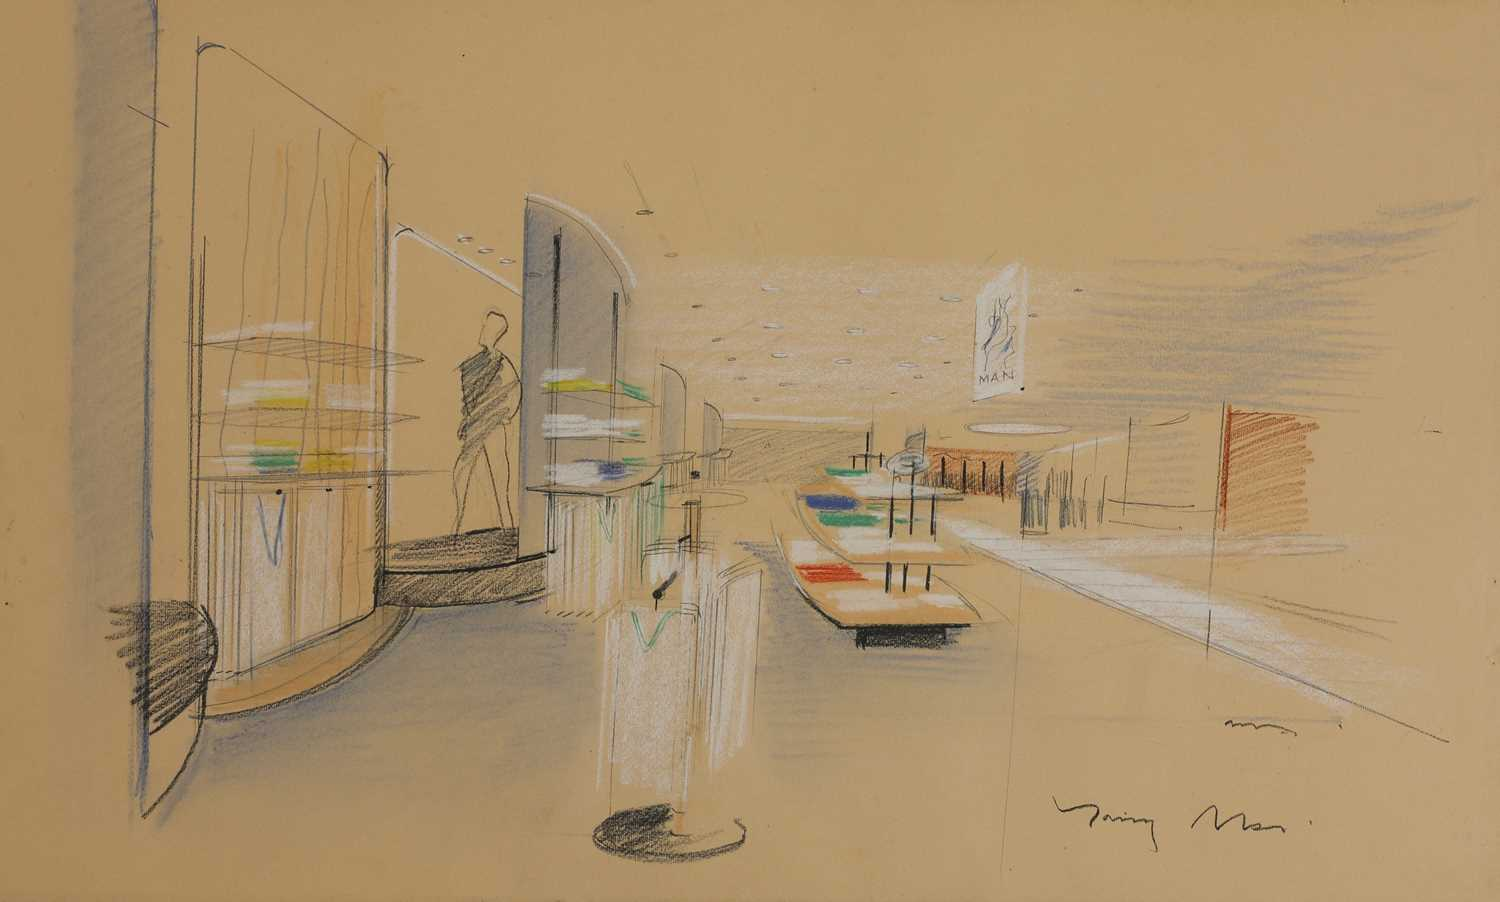 Maurice Broughton Associates, - Image 7 of 10